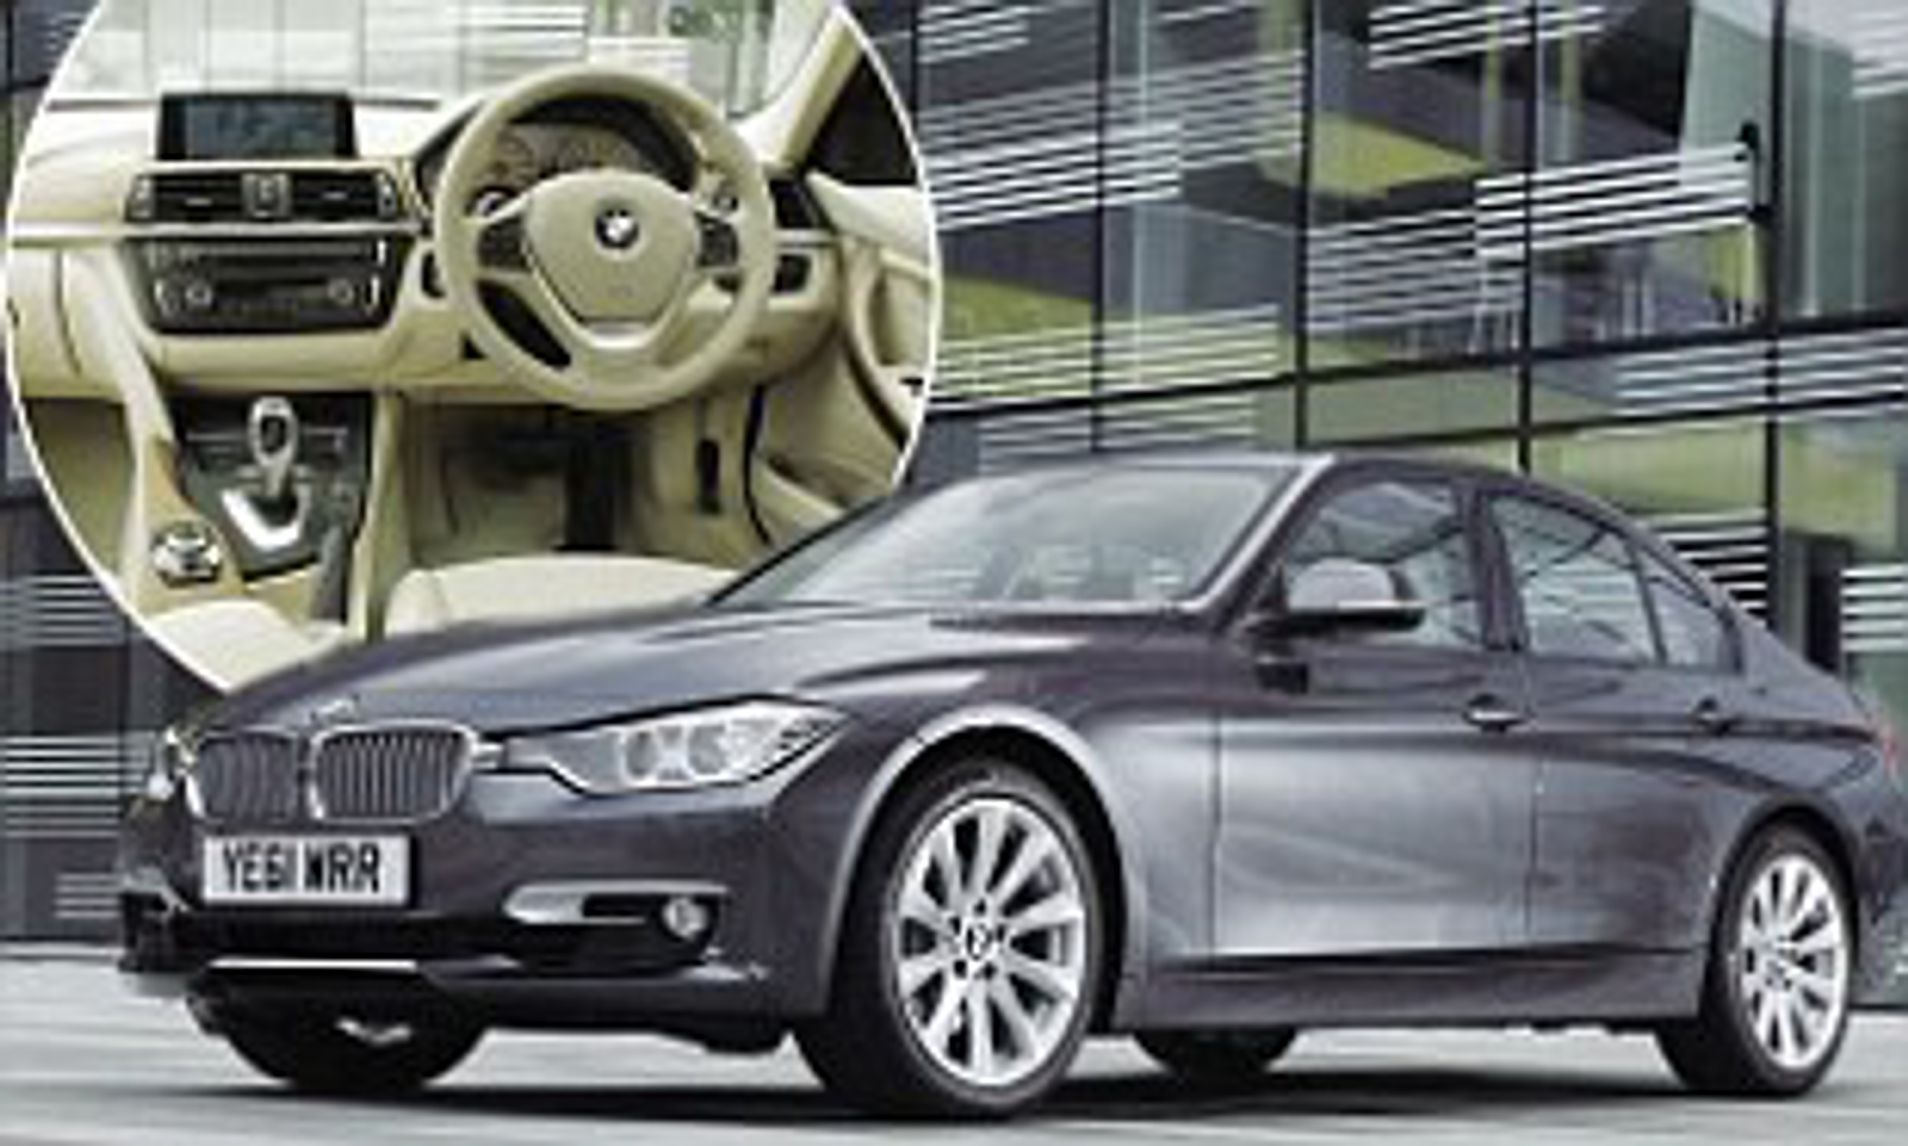 hight resolution of bmw 328i modern reviewed by james martin it is sleeker roomier and brimming with technology brilliant car but why has it got a chocolate dash